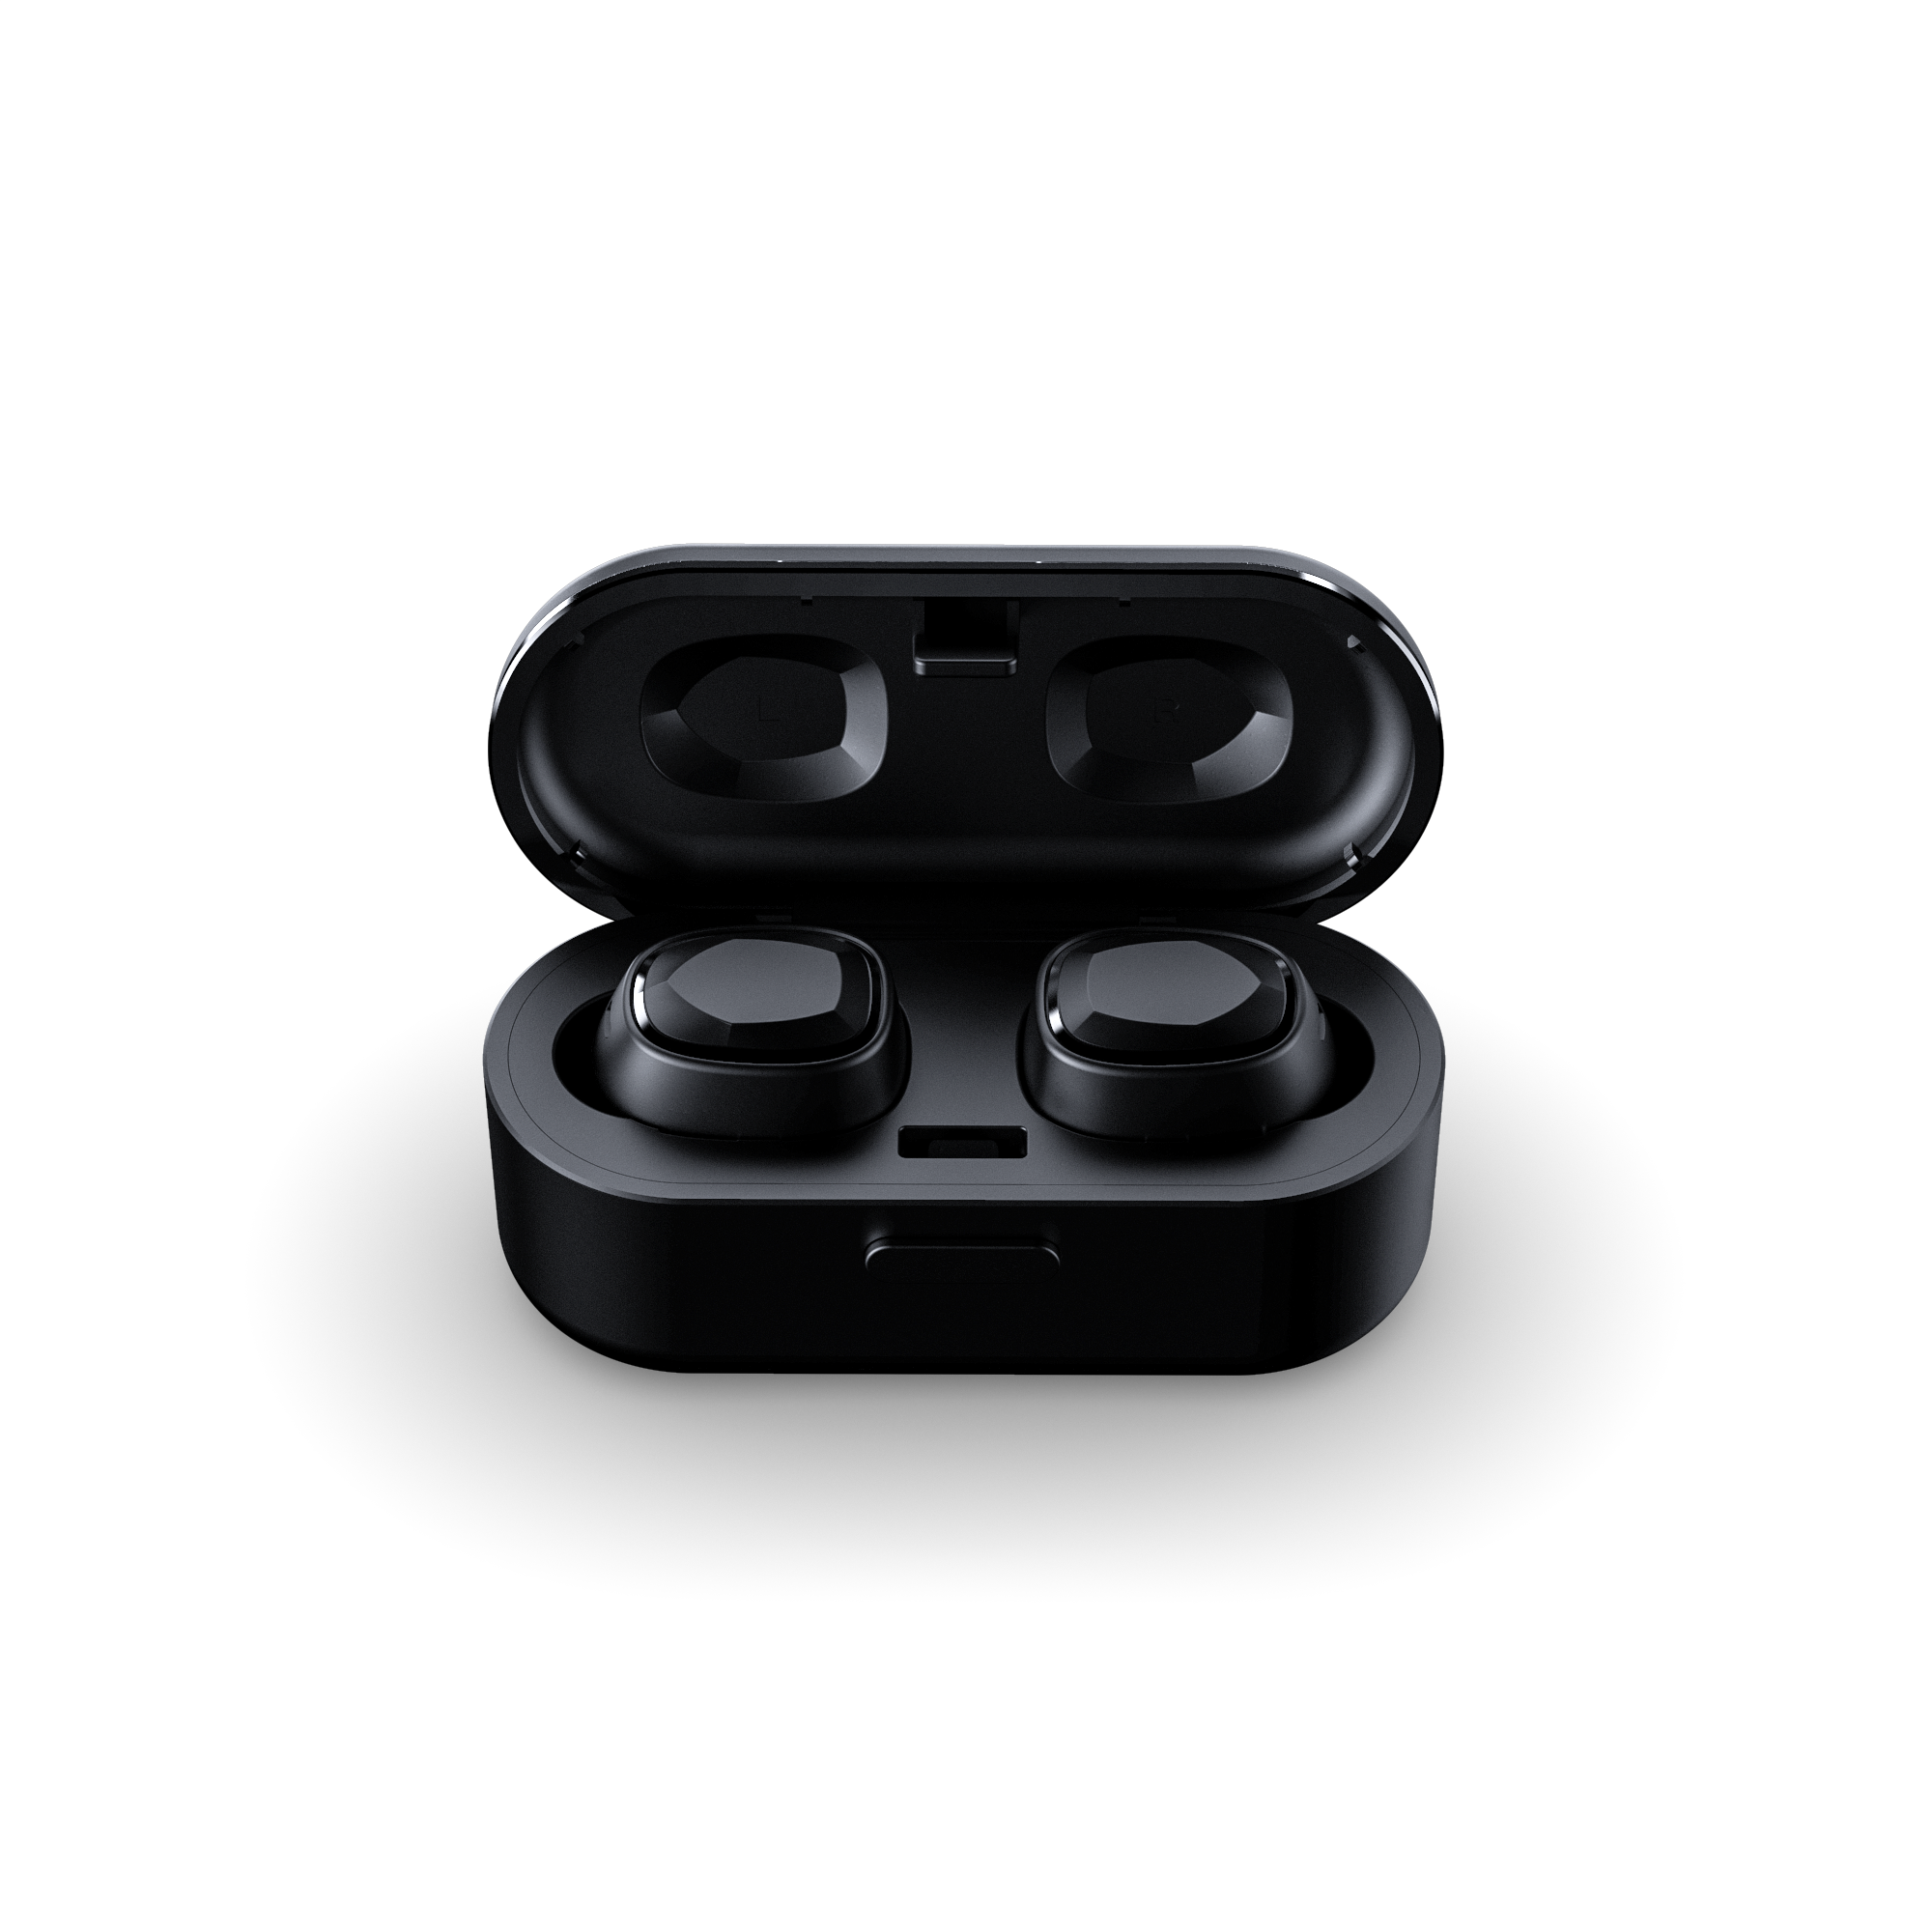 YEVO Air Wireless Headphones sweepstakes